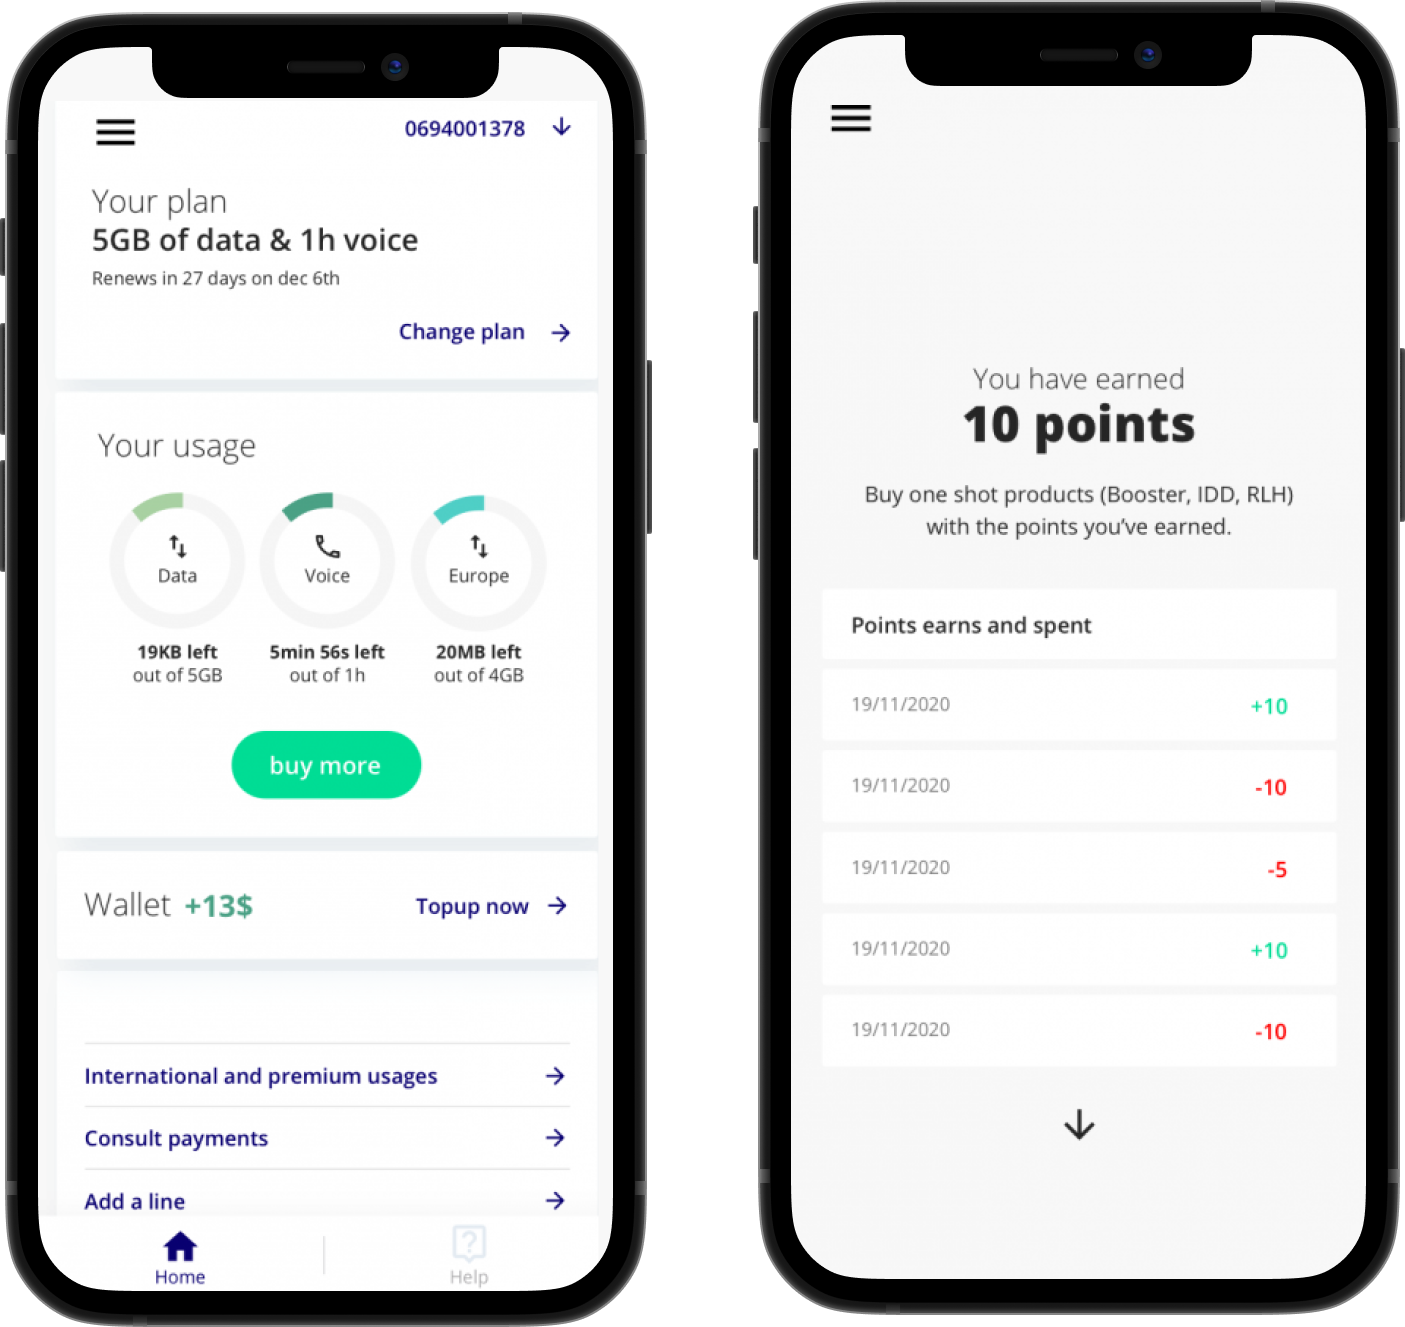 Monitor your plan and get Rewards from triPica's app